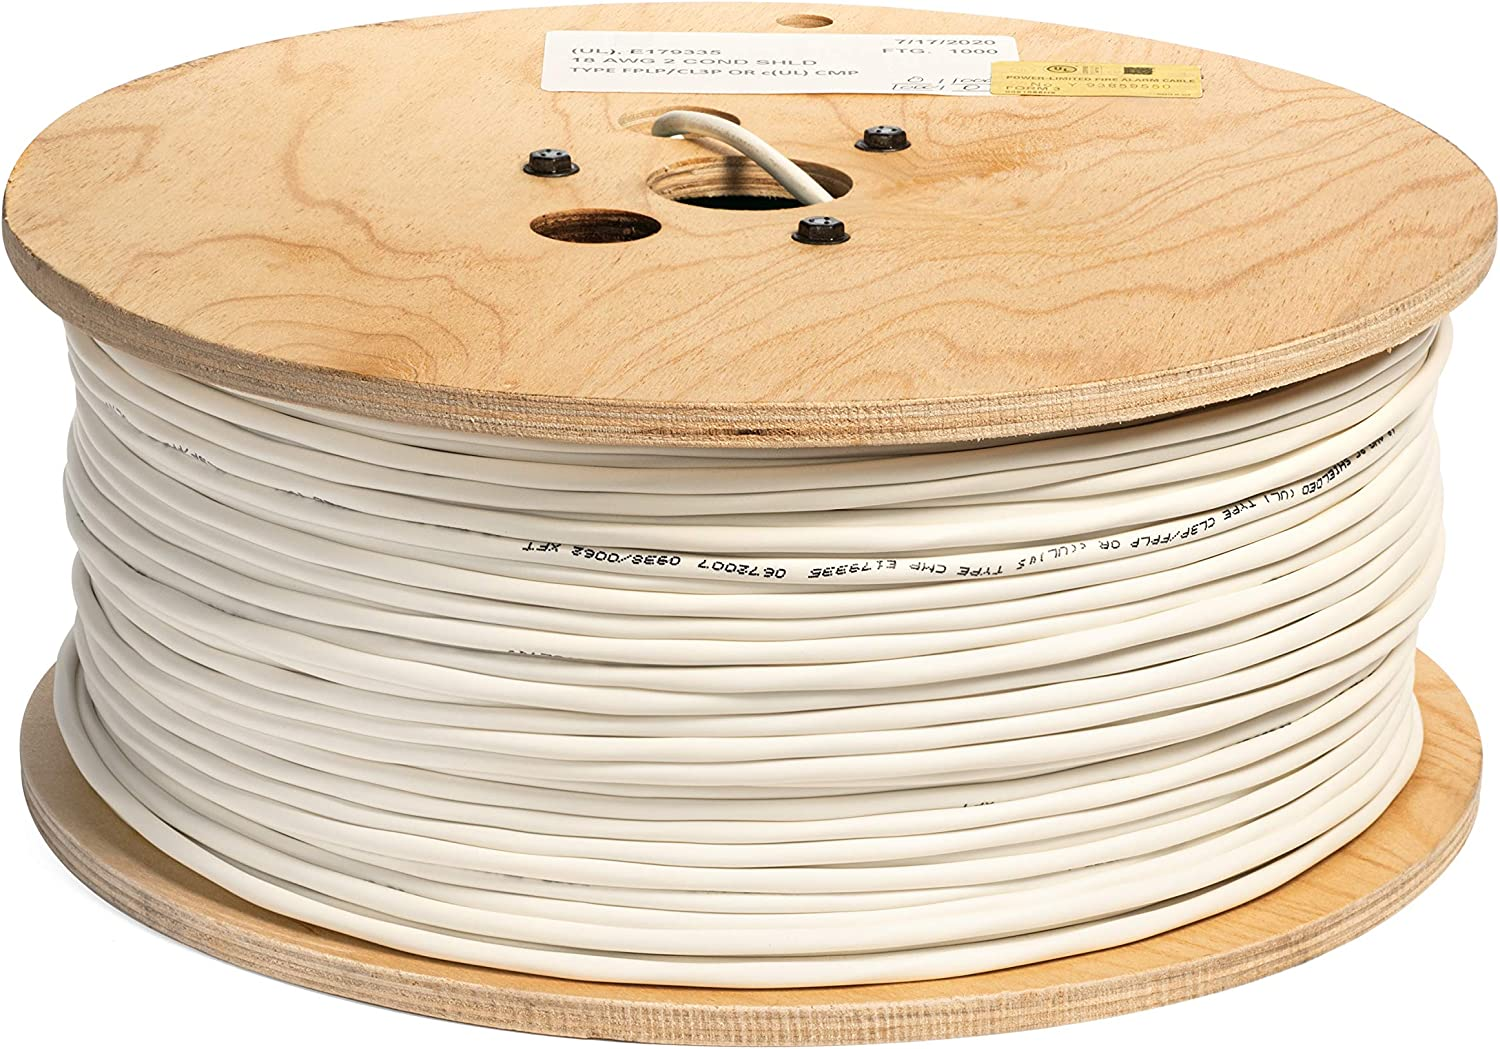 18 AWG 2 Conductor UL Approved Time Price reduction sale CMP 100% Plenum Copper Rat Type